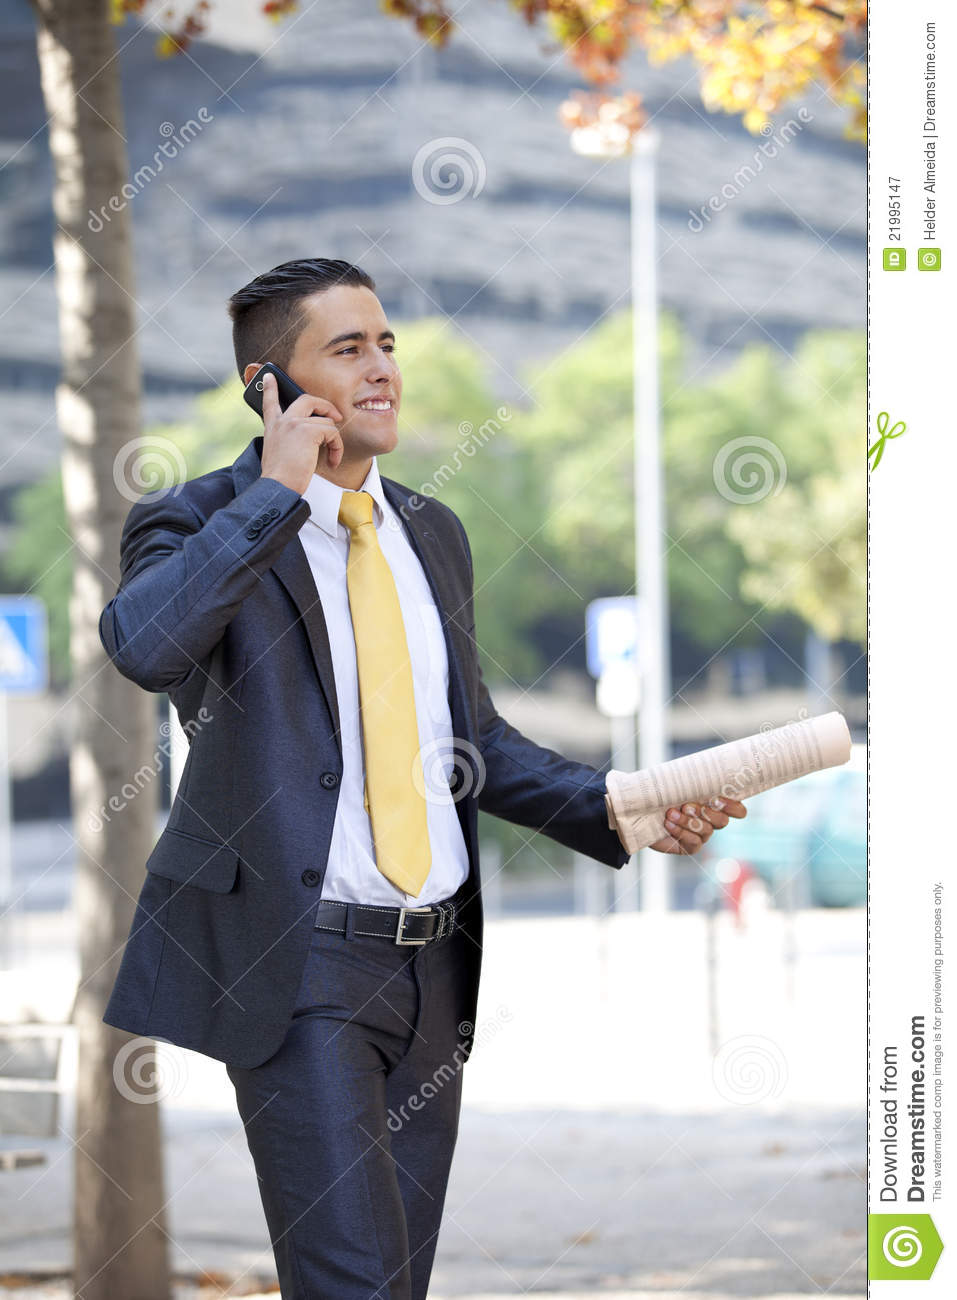 businessman walking at the city park royalty free stock photography